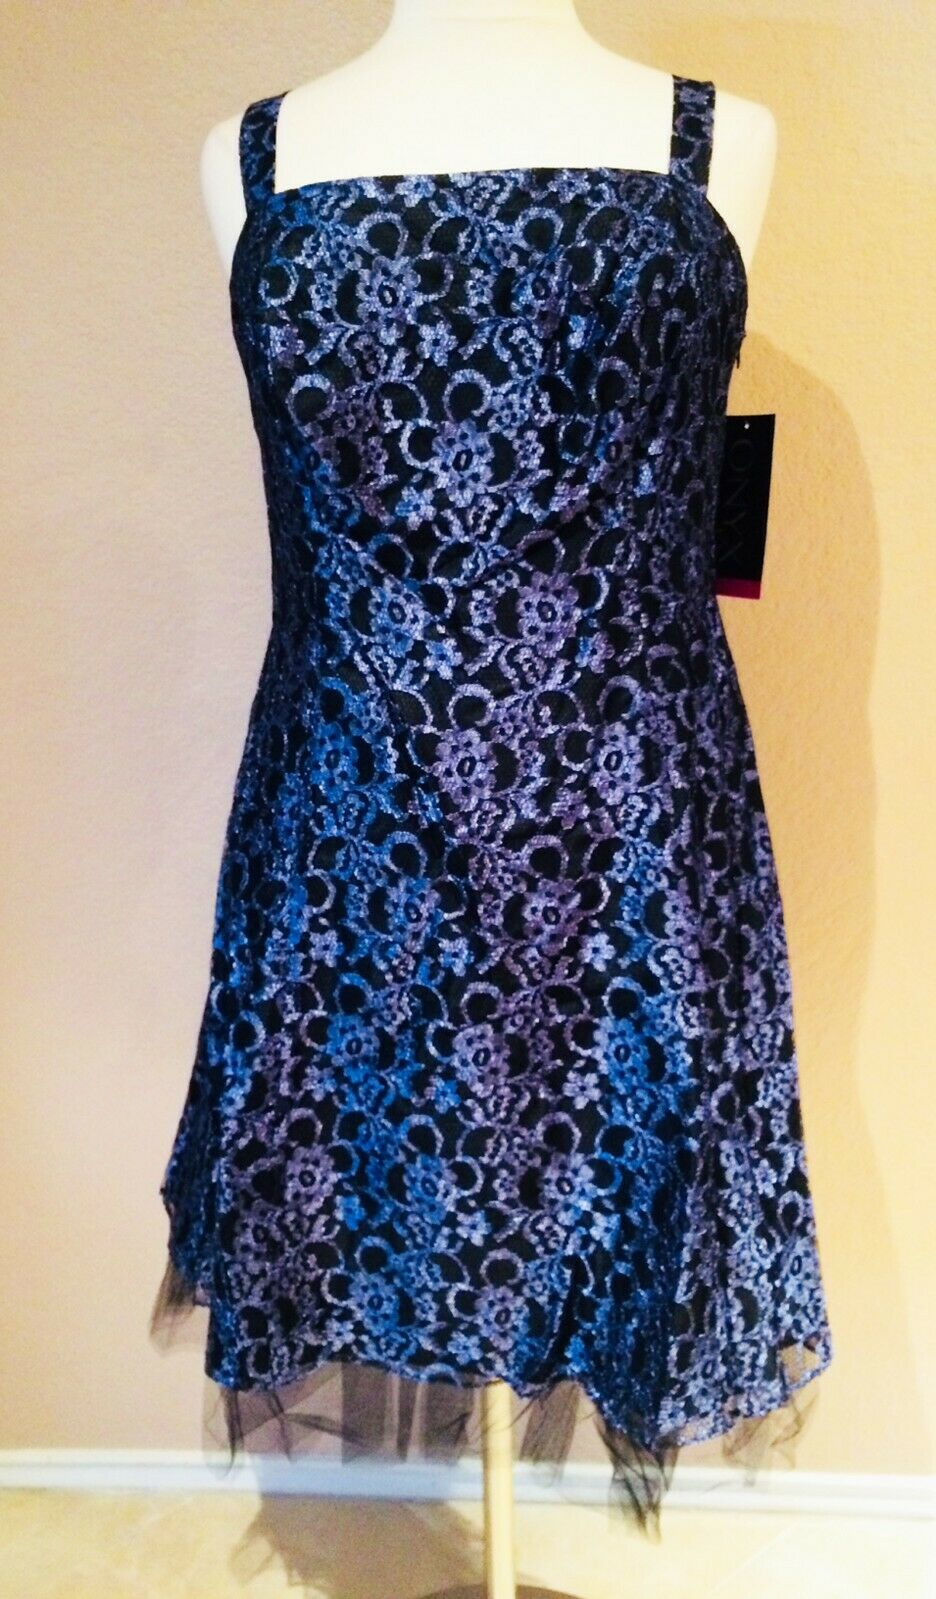 Formal Short Prom Party Dress Onyx Nite Floral Lace Fit & Flare A-Line 18W 20W